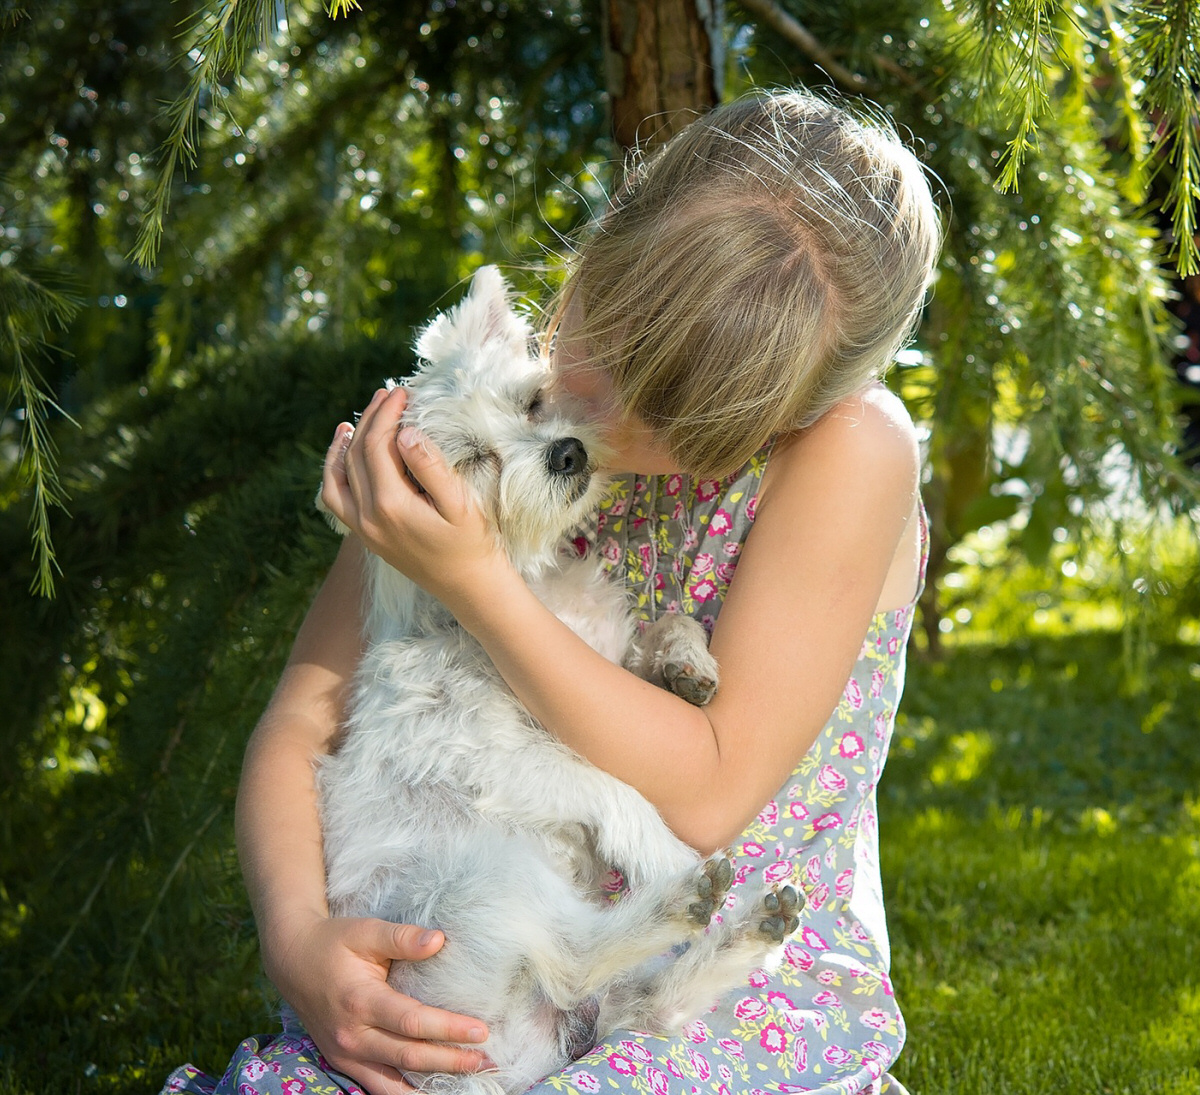 How to Teach Your Child to Help Take Care of Your Dog